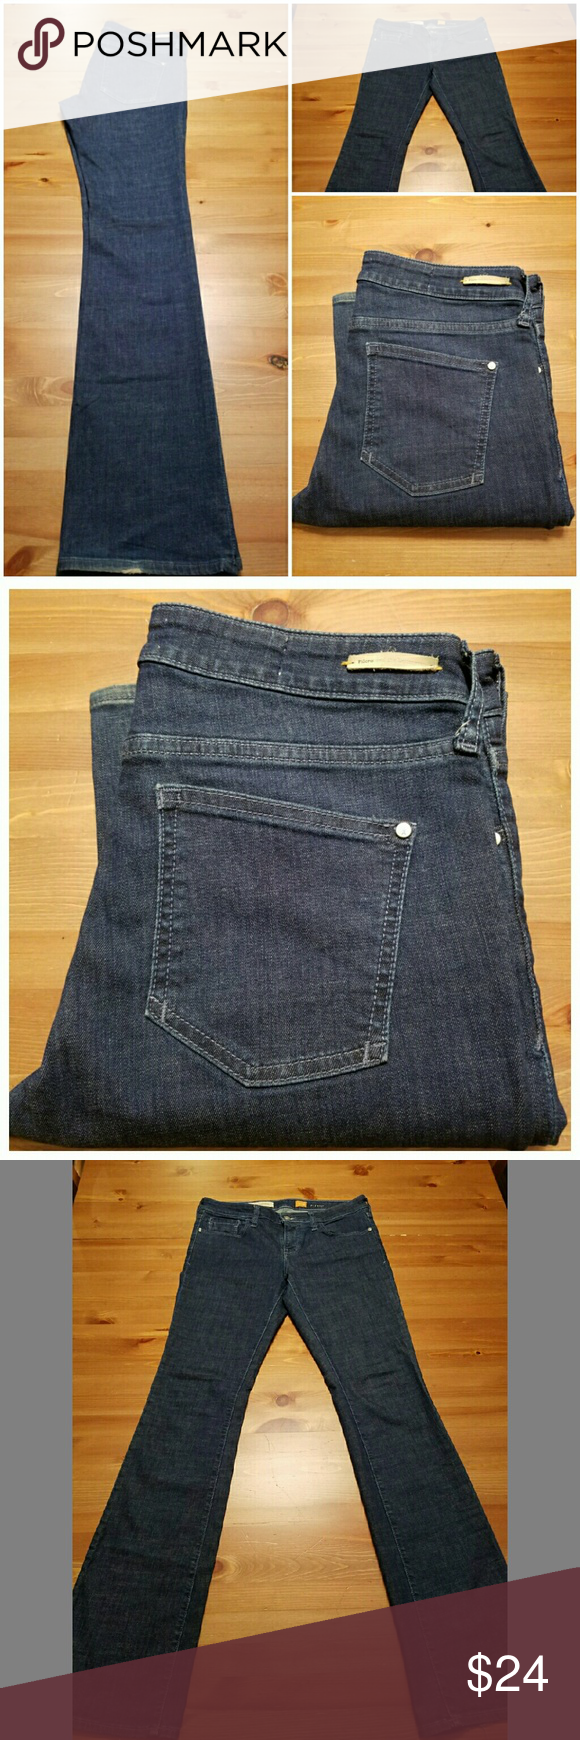 """Anthropologie Pilcro and the Letterpress Stet 28 Excellent pair of Pilcro and the Letterpress Stet fit jeans in size 28. Perfect jeans for girls with long legs! Dark rinse, exceptional condition with very minor wear oh hems. Straight leg bootcut jeans with a mid-higer rise. 41.5"""" length, 33.5"""" inseam, 15"""" across waist, 9"""" rise. Anthropologie Jeans Boot Cut"""